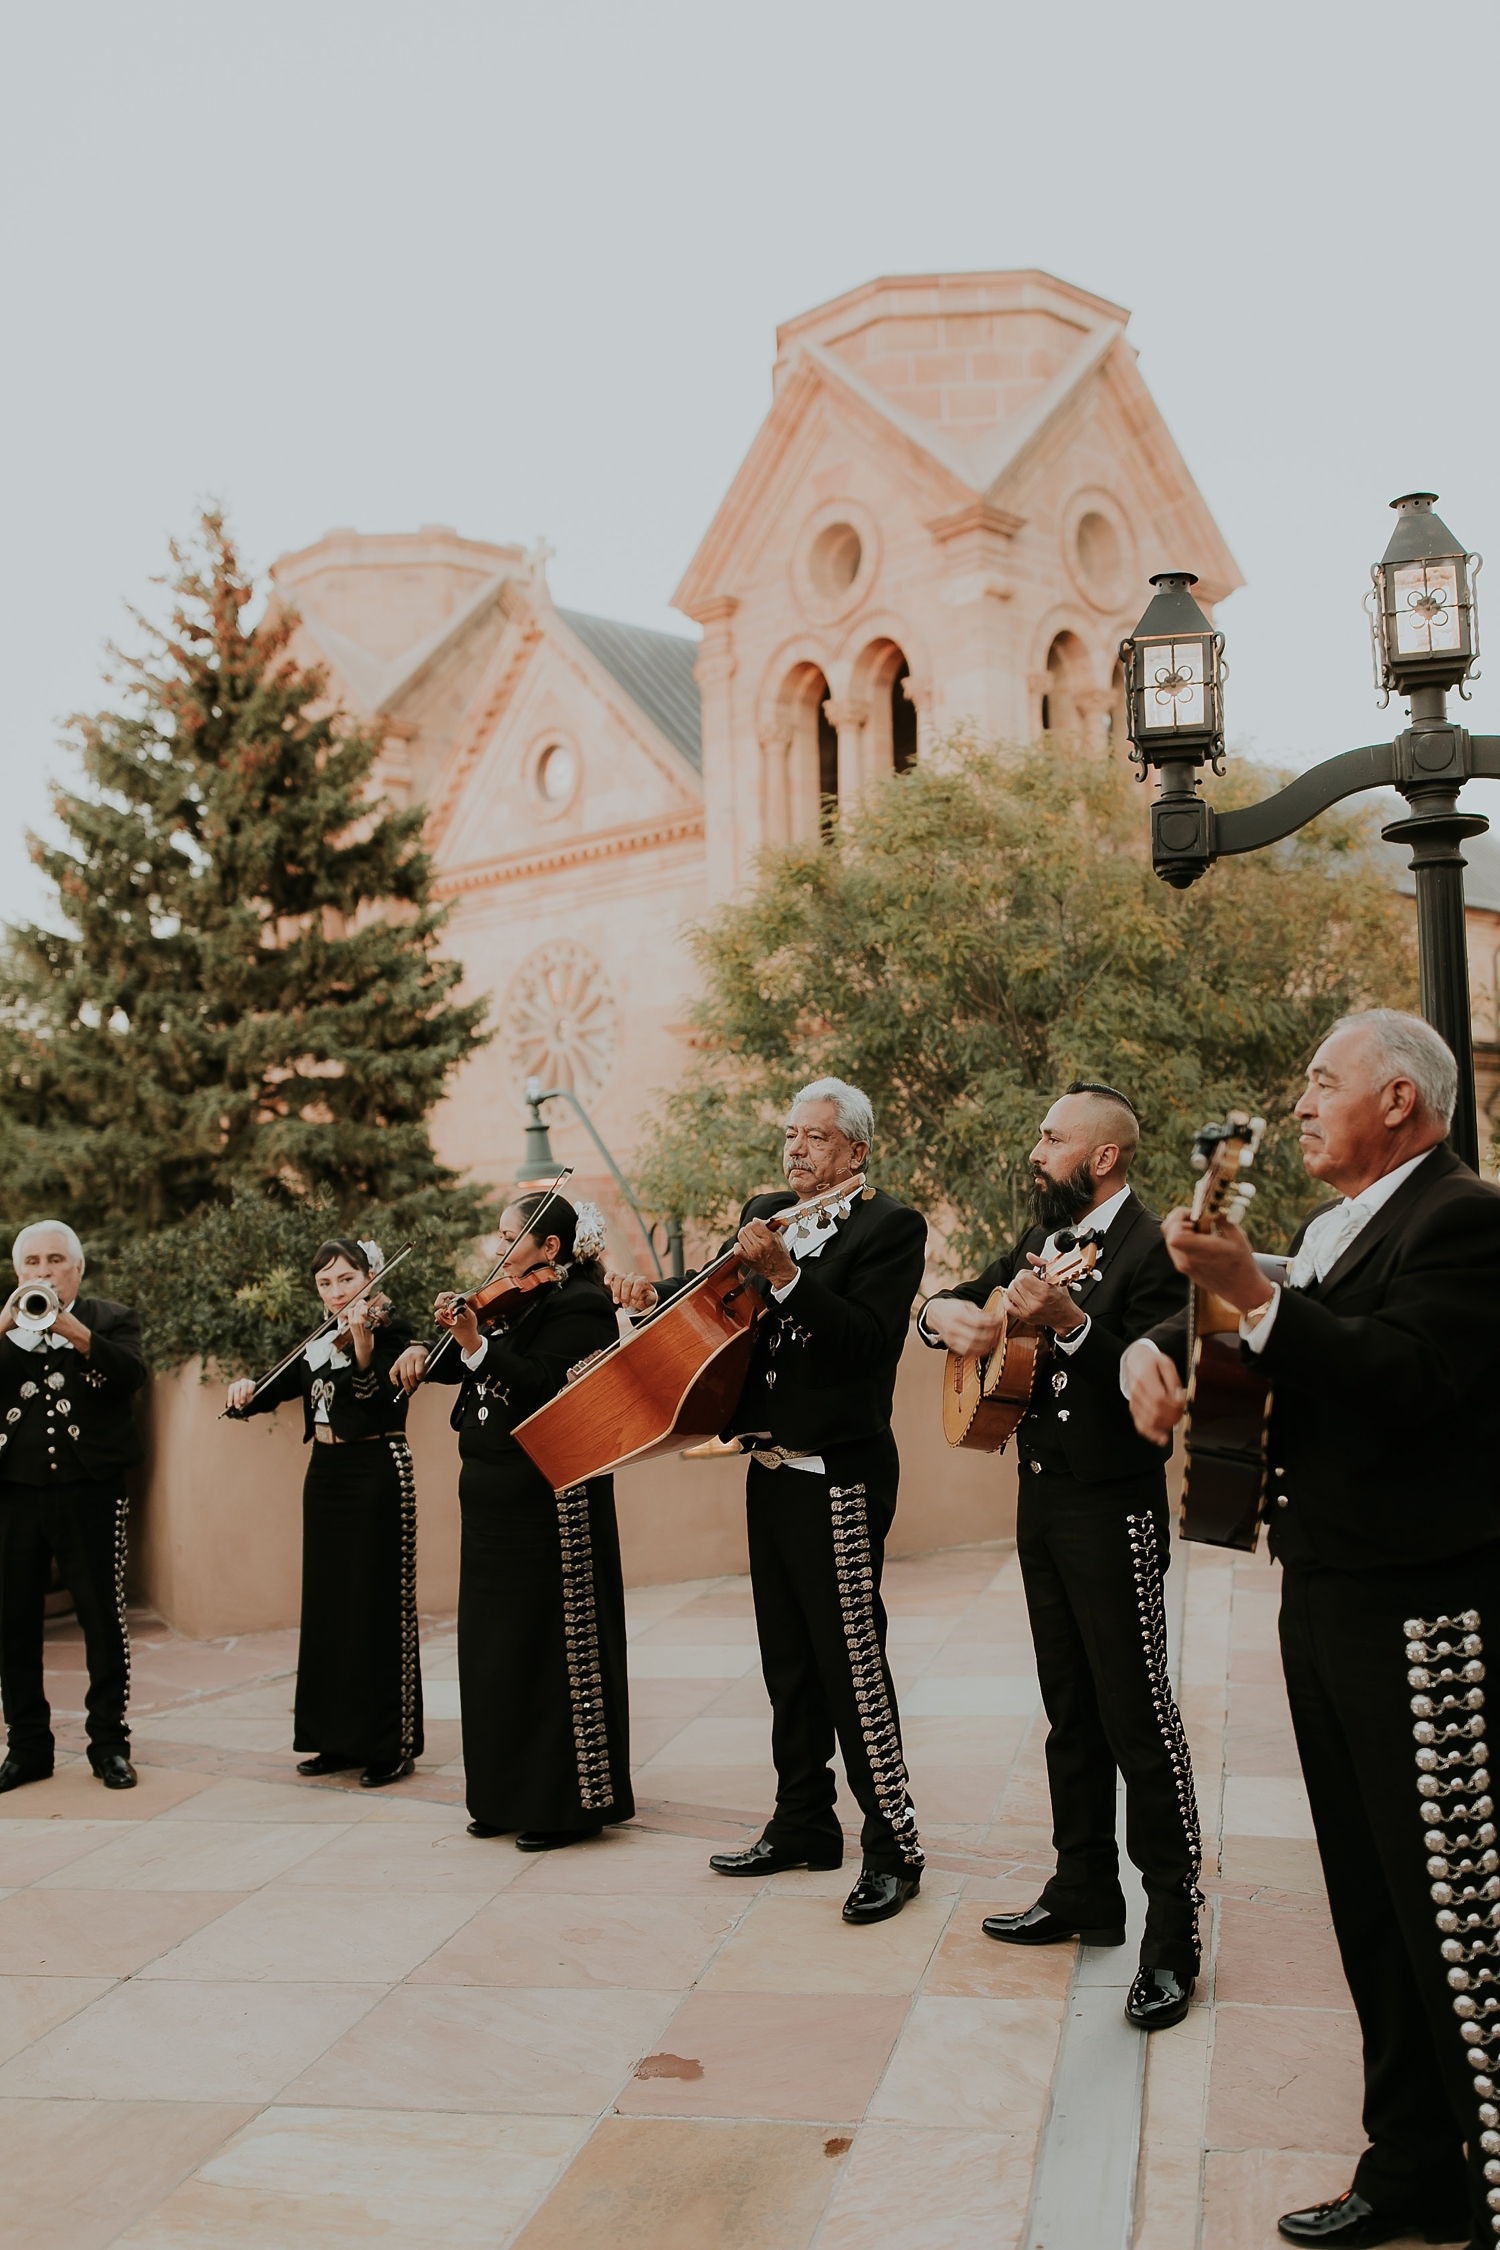 Alicia+lucia+photography+-+albuquerque+wedding+photographer+-+santa+fe+wedding+photography+-+new+mexico+wedding+photographer+-+la+fonda+santa+fe+wedding+-+santa+fe+fall+wedding+-+la+fonda+fall+wedding_0091.jpg